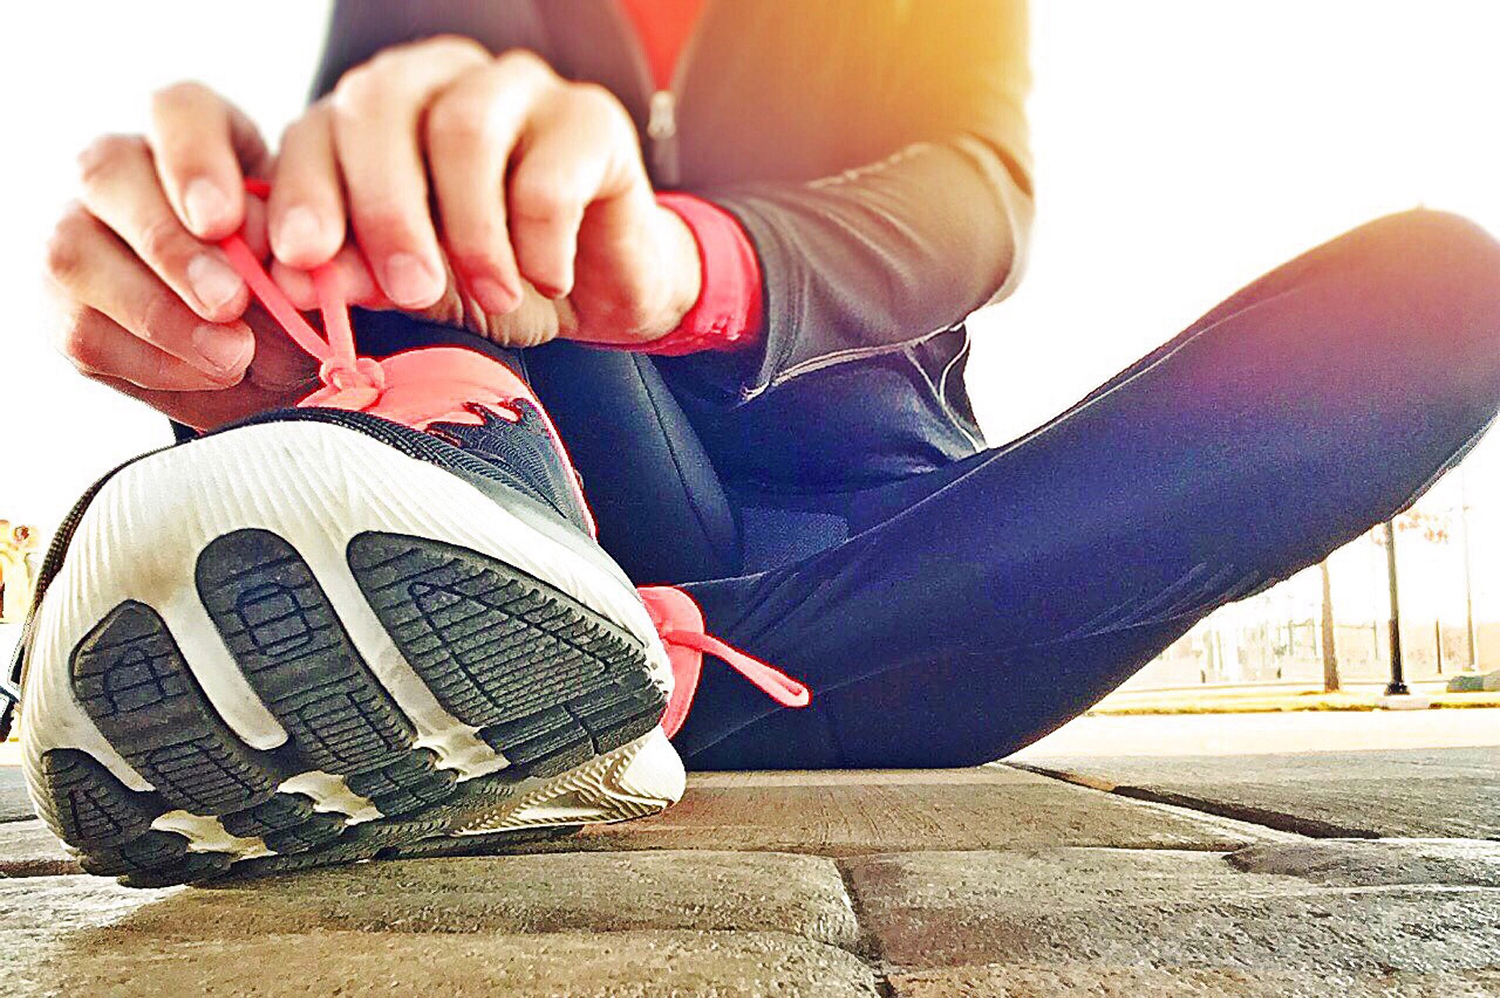 Fit Runner Tying Shoes Ready to Jog